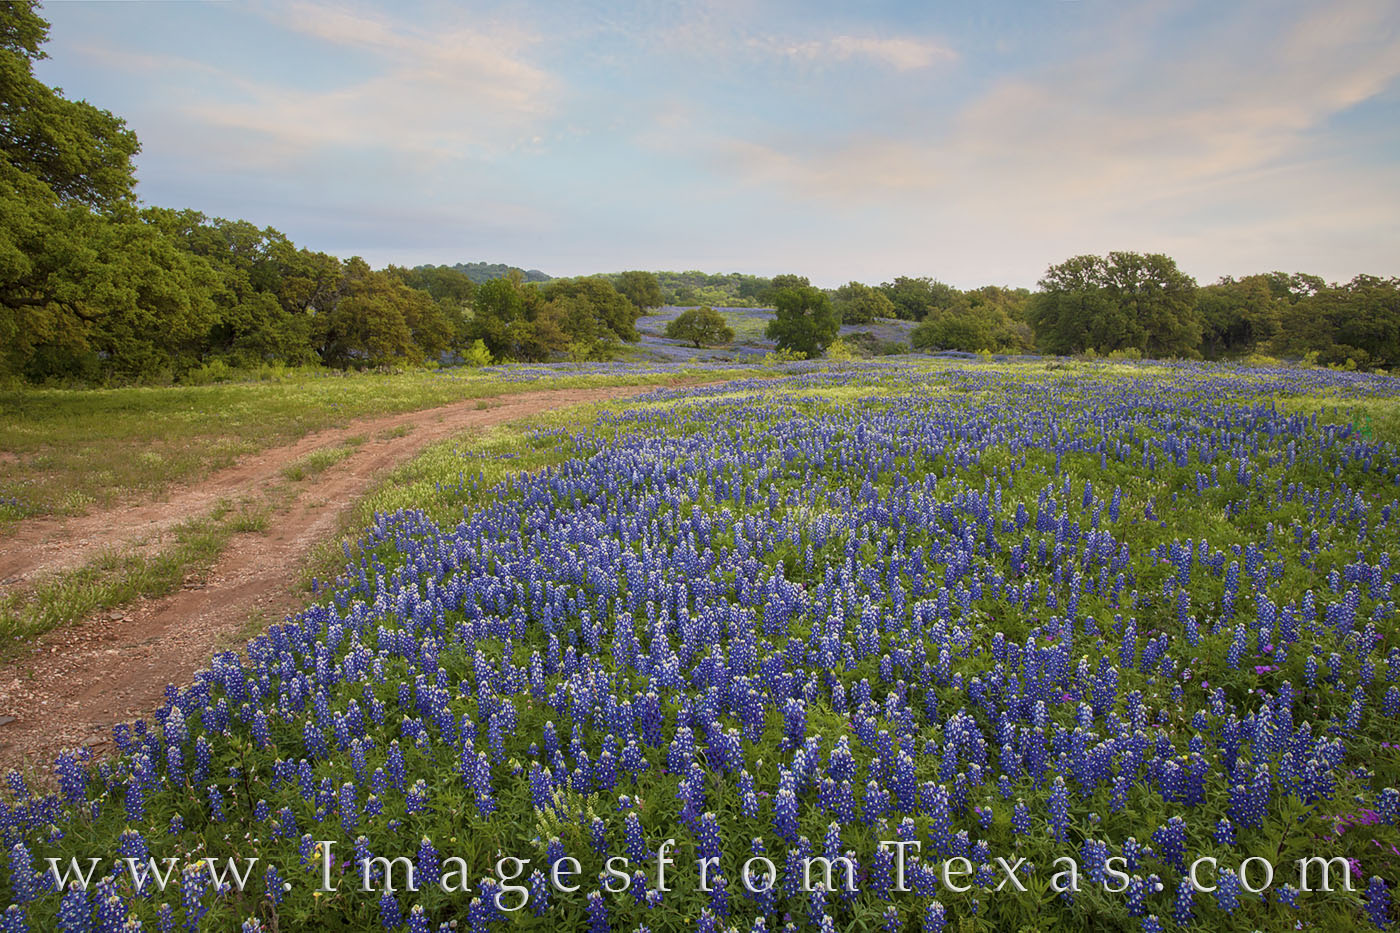 bluebonnets, wildflowers, texas wildflowers, dirt road, country road, spring, morning, landscapes, hill country, texas hill country, blue, flowers, sunrise, photo